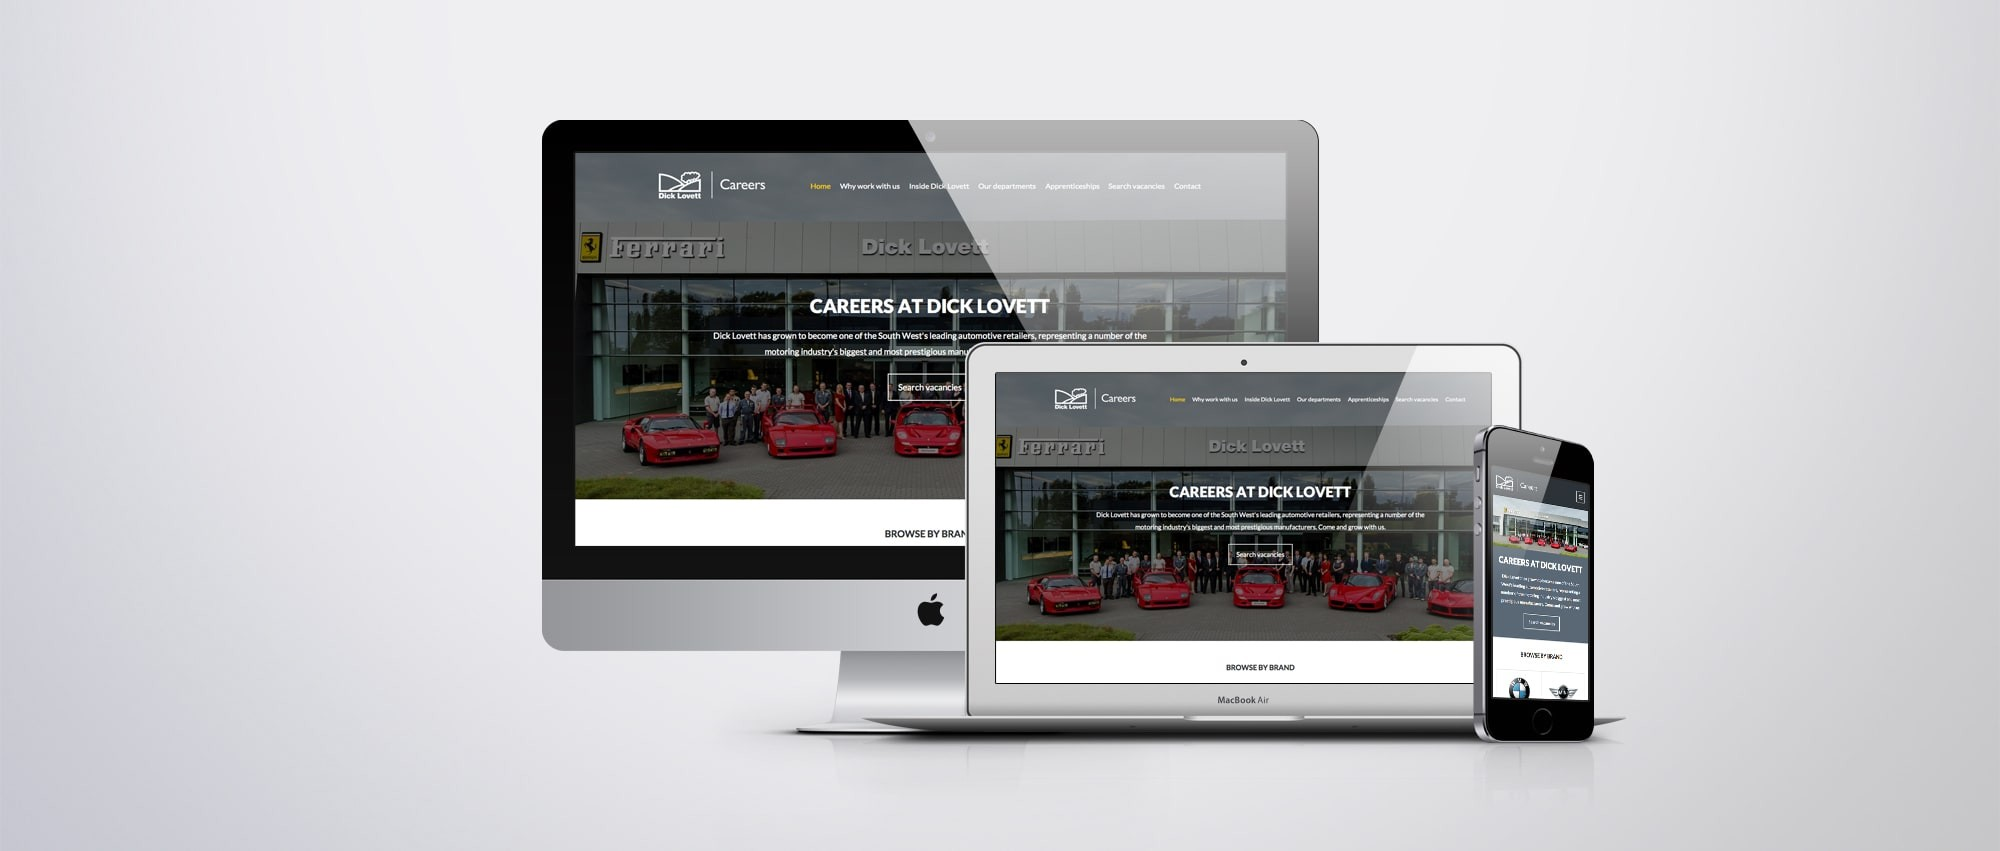 The new Dick Lovett Careers website is now live.